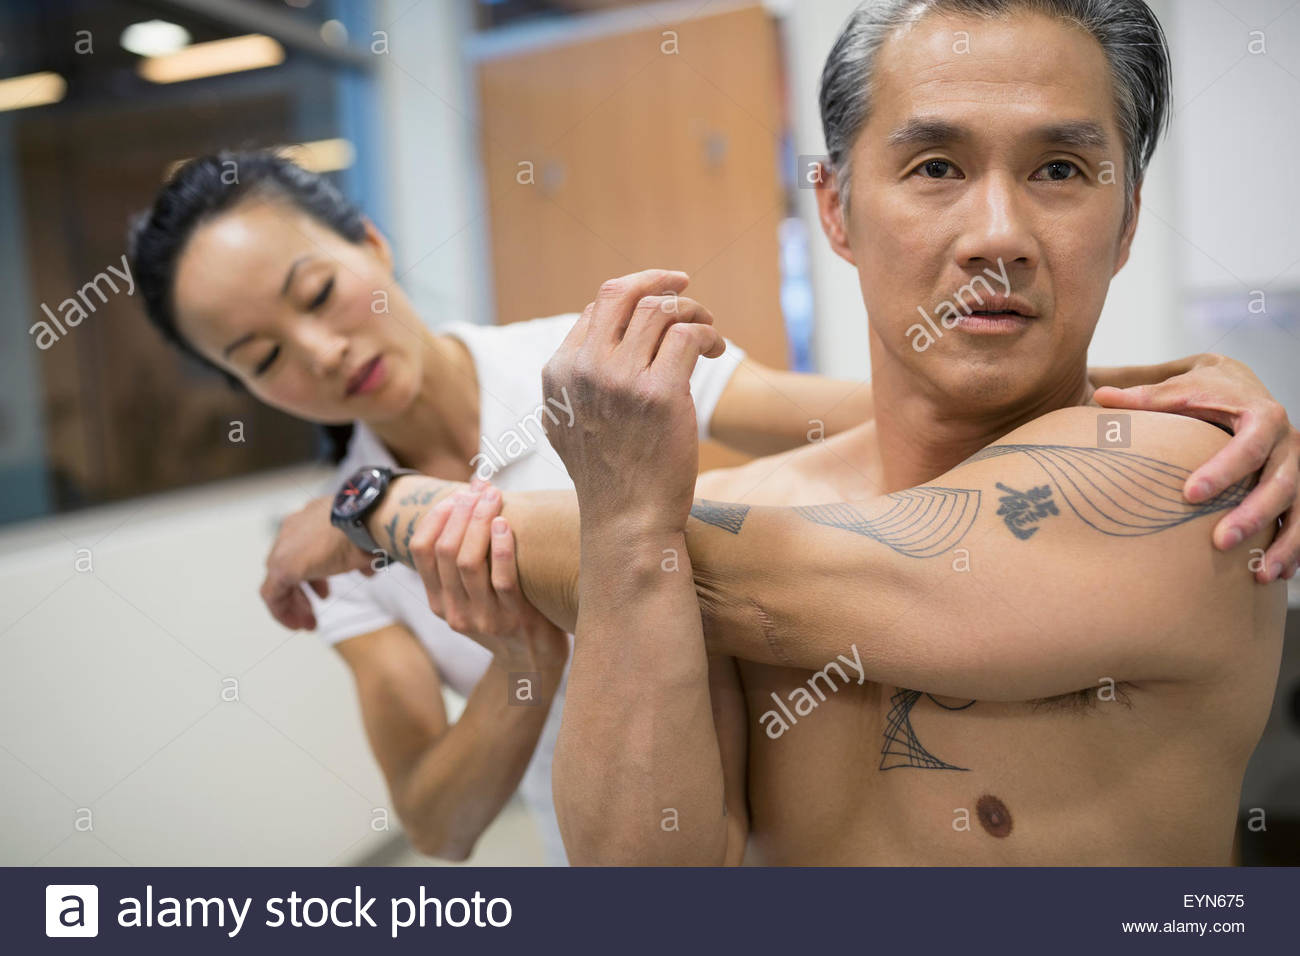 Physical therapist guiding patient stretching arm - Stock Image